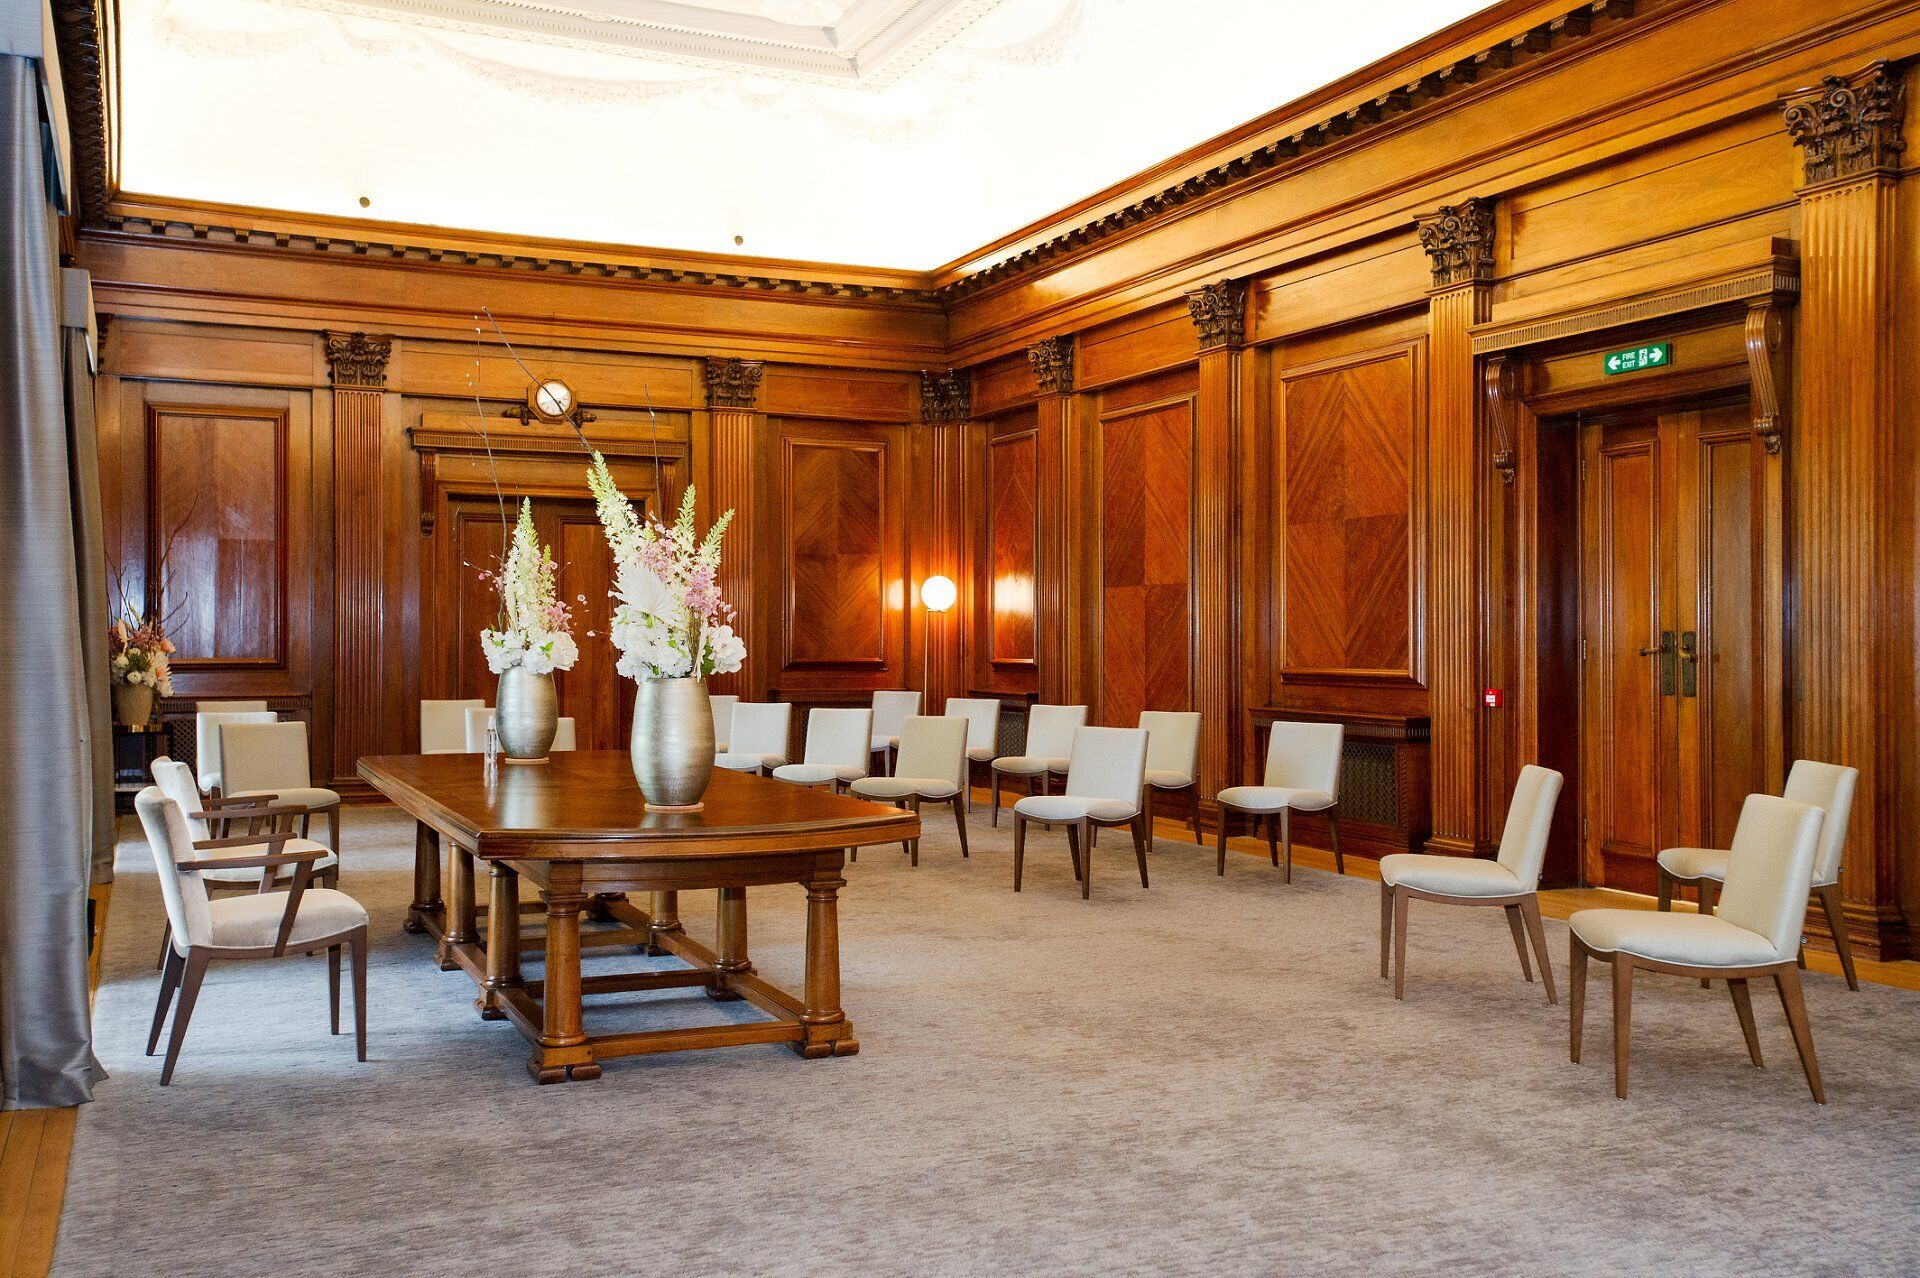 seen from the front the westminster room is still utterly impressive even with a reduced number of guests